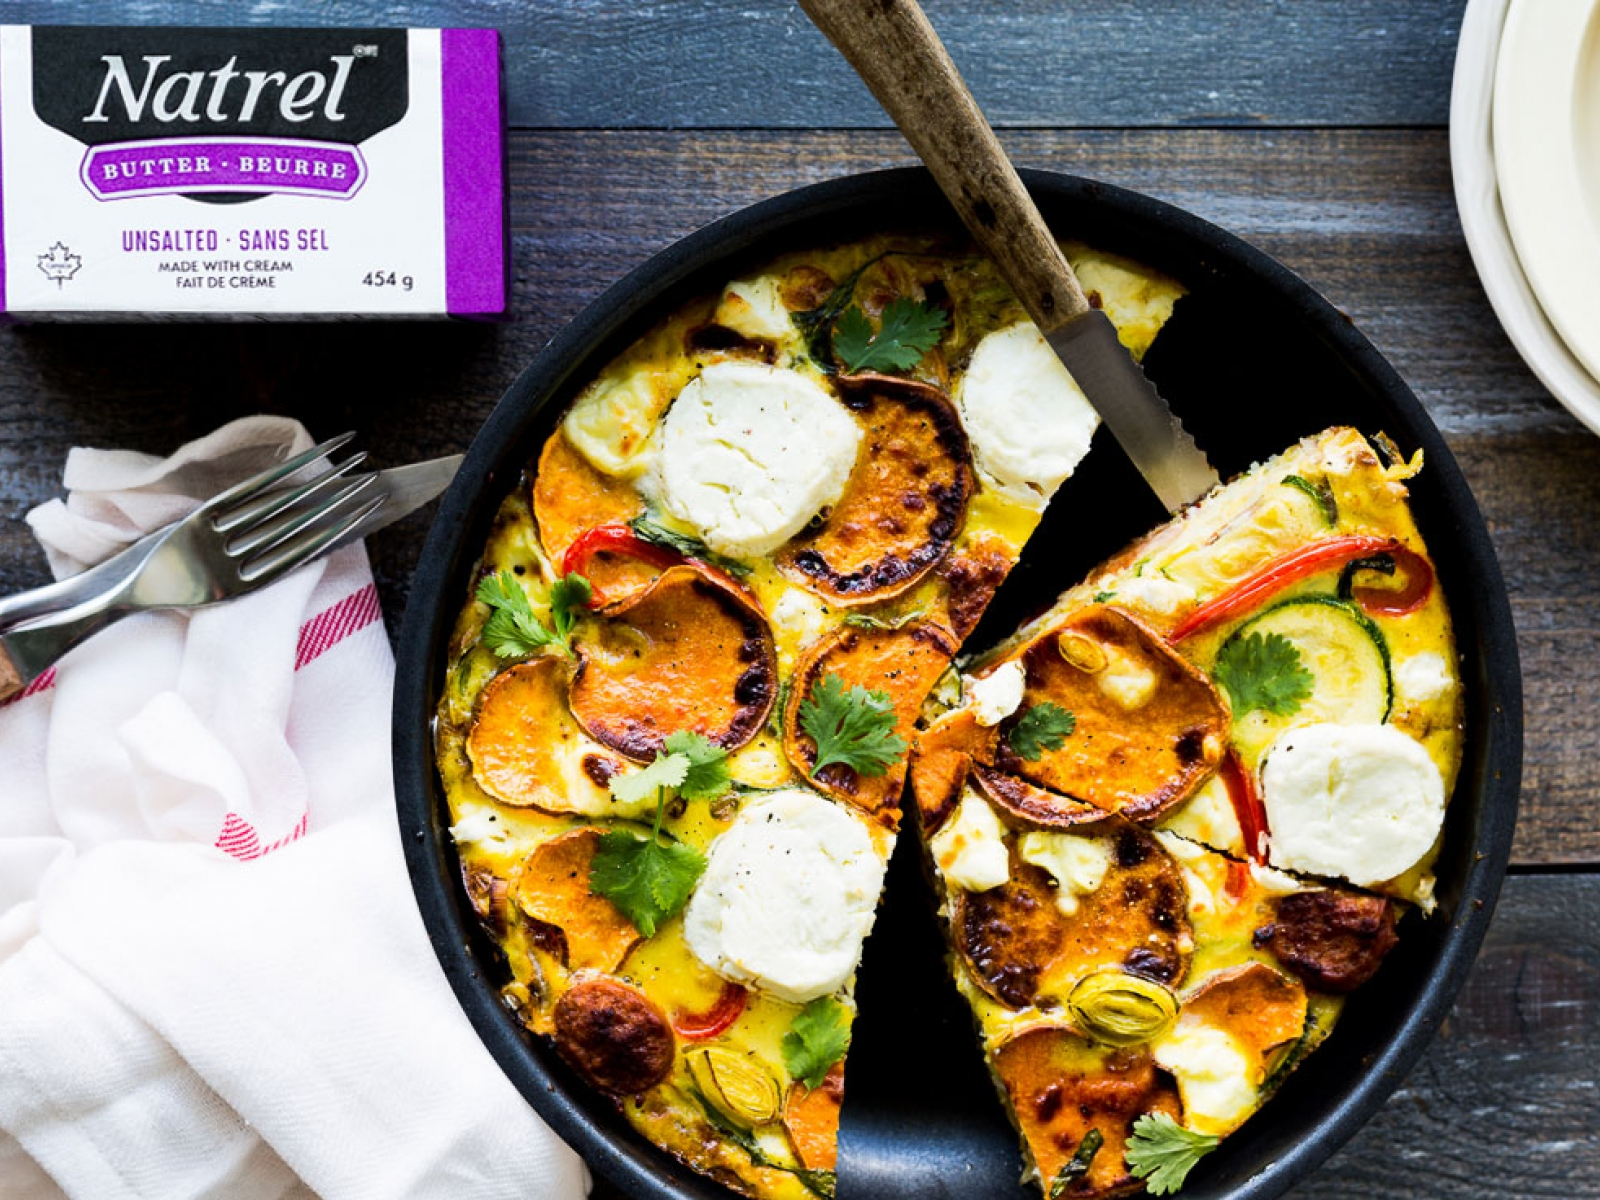 Vegetable frittata with sausage and goat cheese